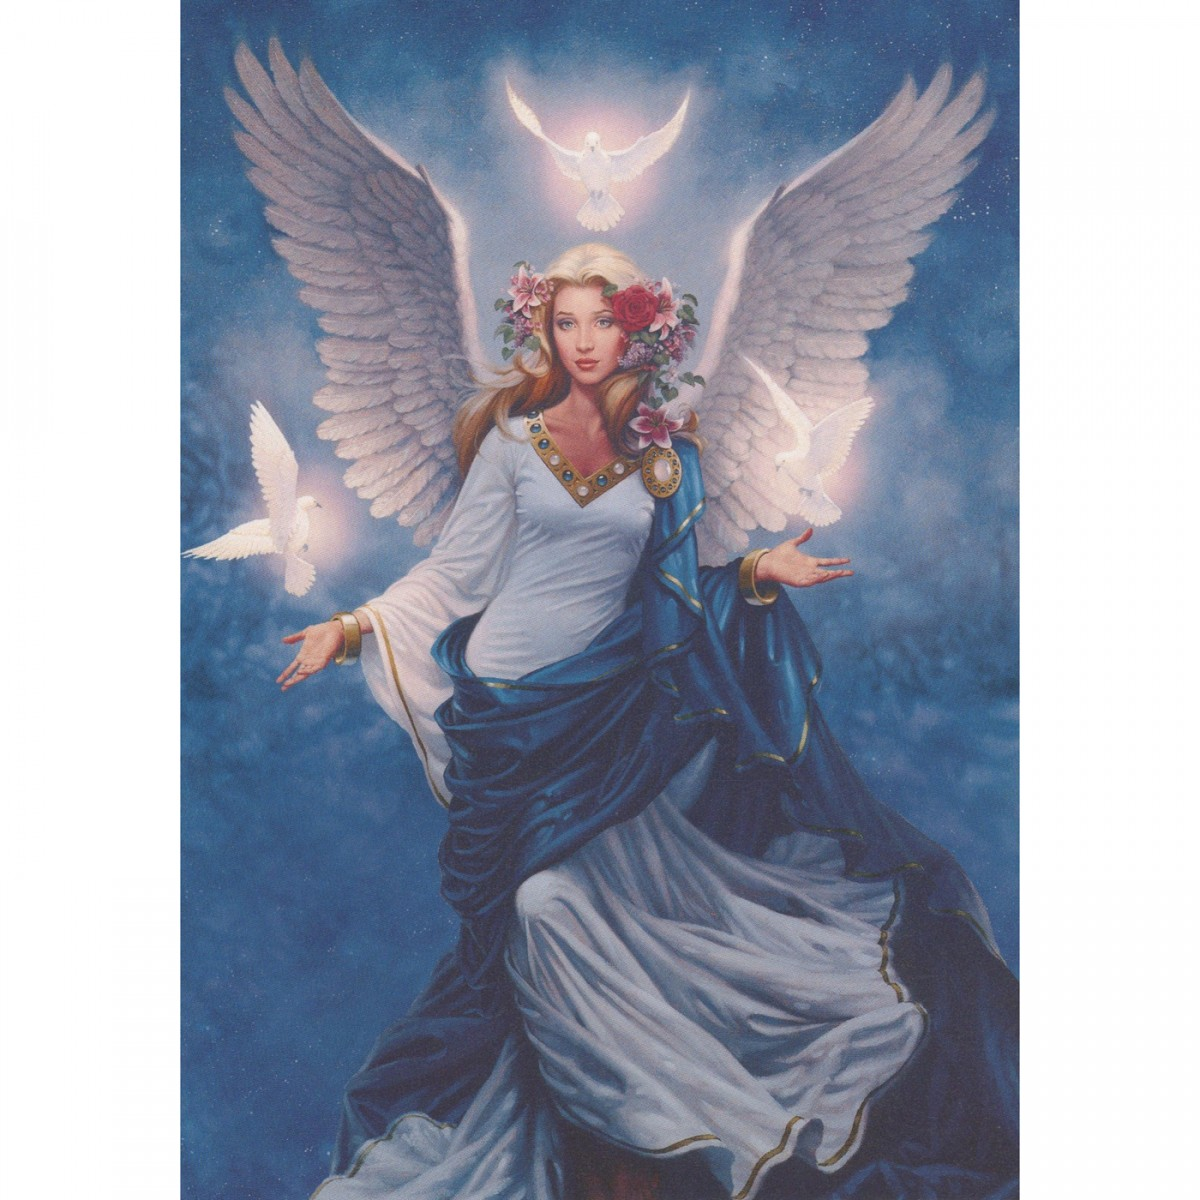 free angel birthday greeting cards ; 23000-Z1